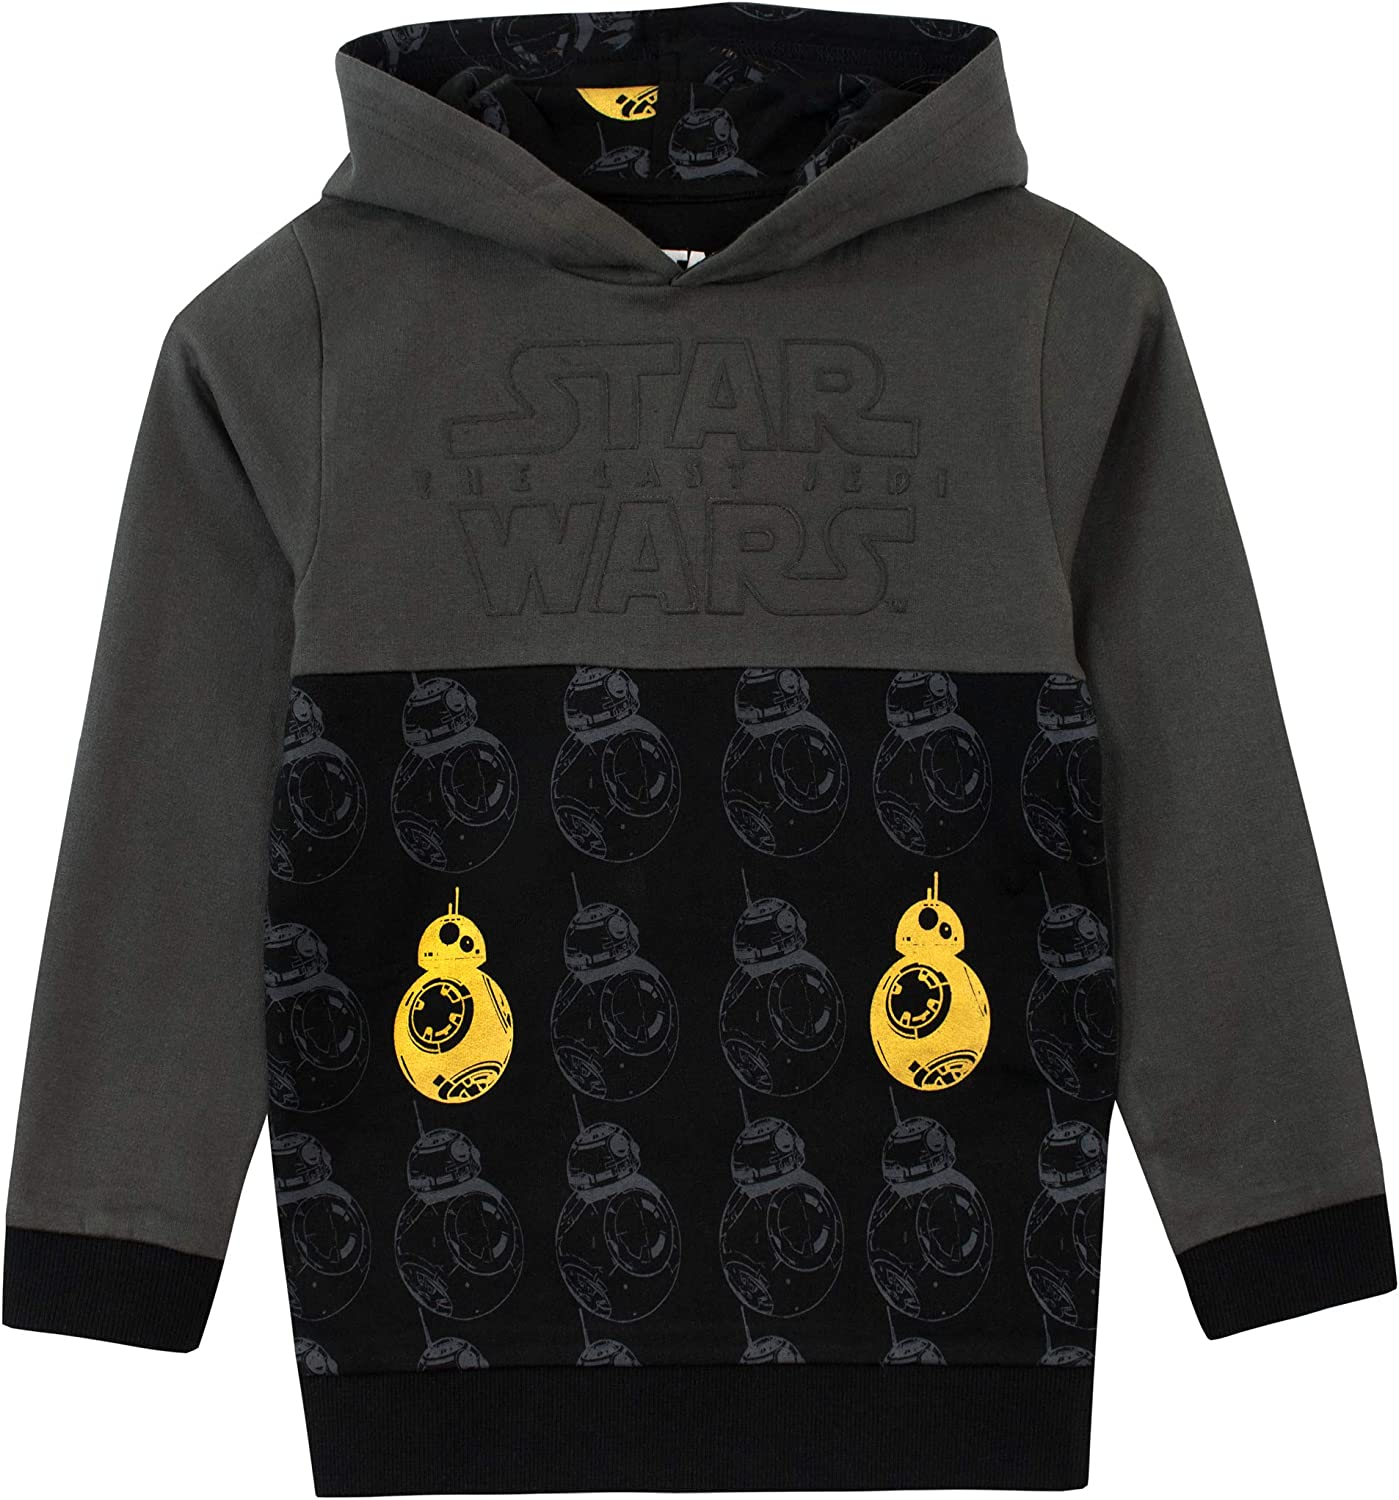 Sweat Shirt /à Capuche Star Wars Gar/çon